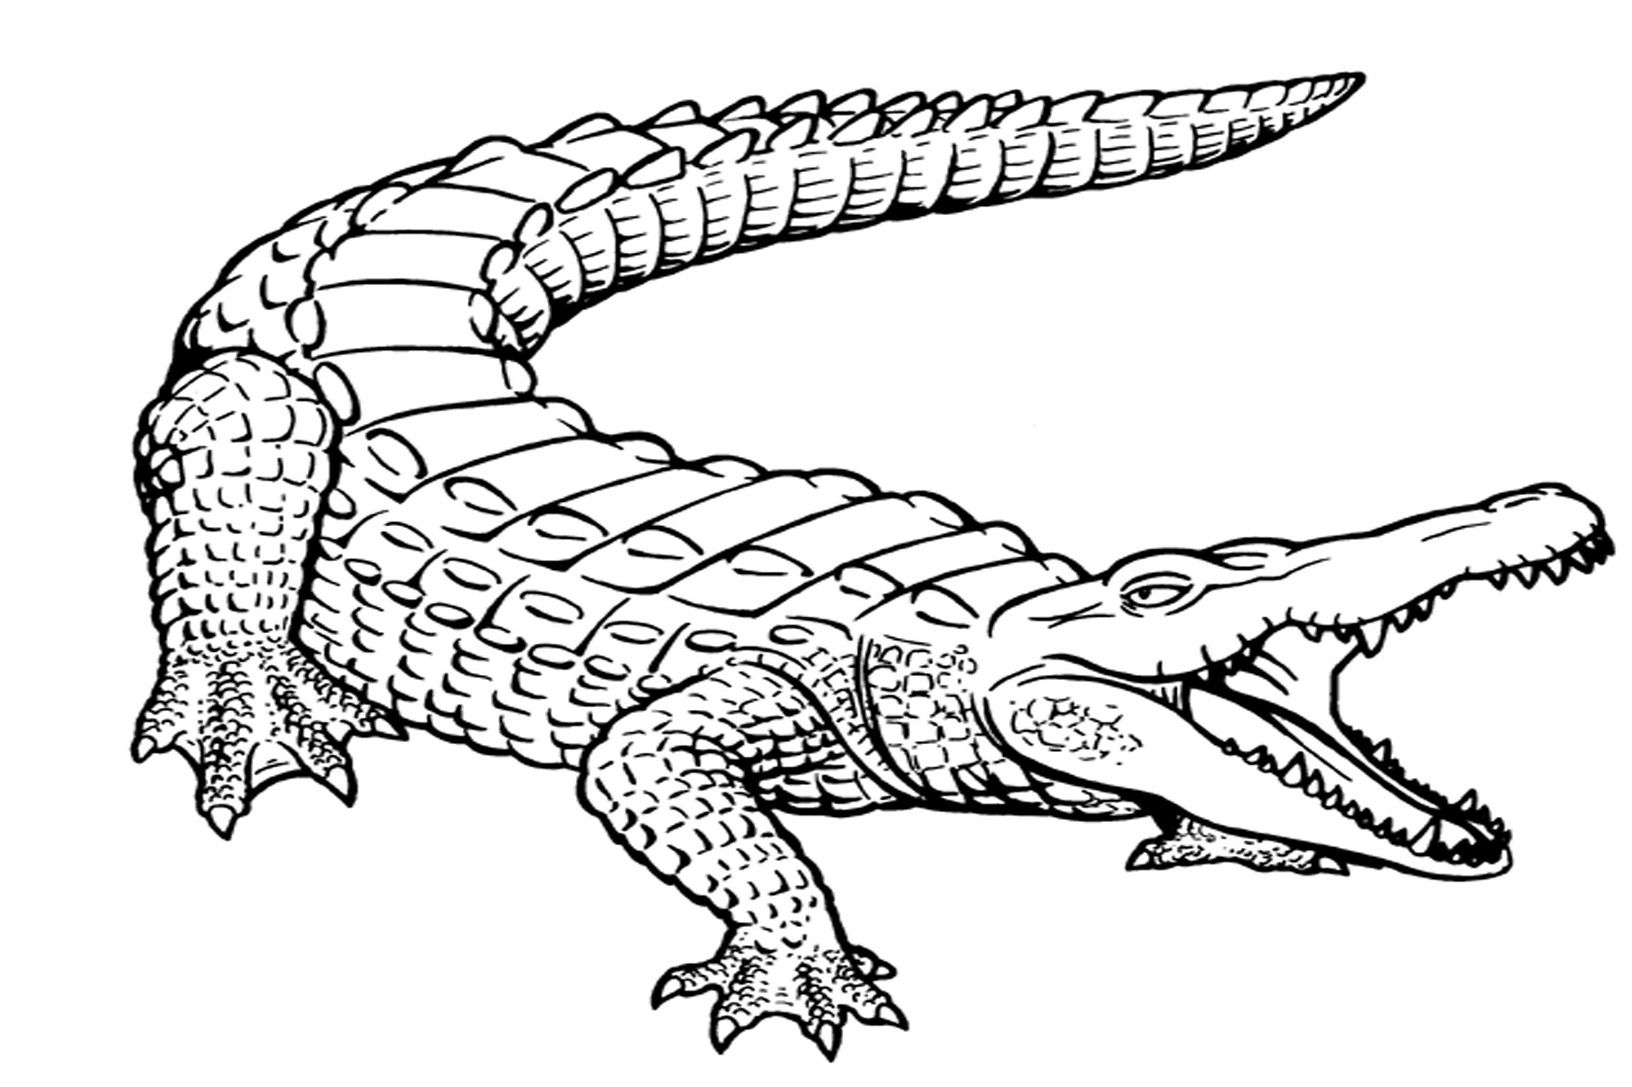 Free Printable Alligator Coloring Pages For Kids | Printables - Free Printable Pictures Of Crocodiles